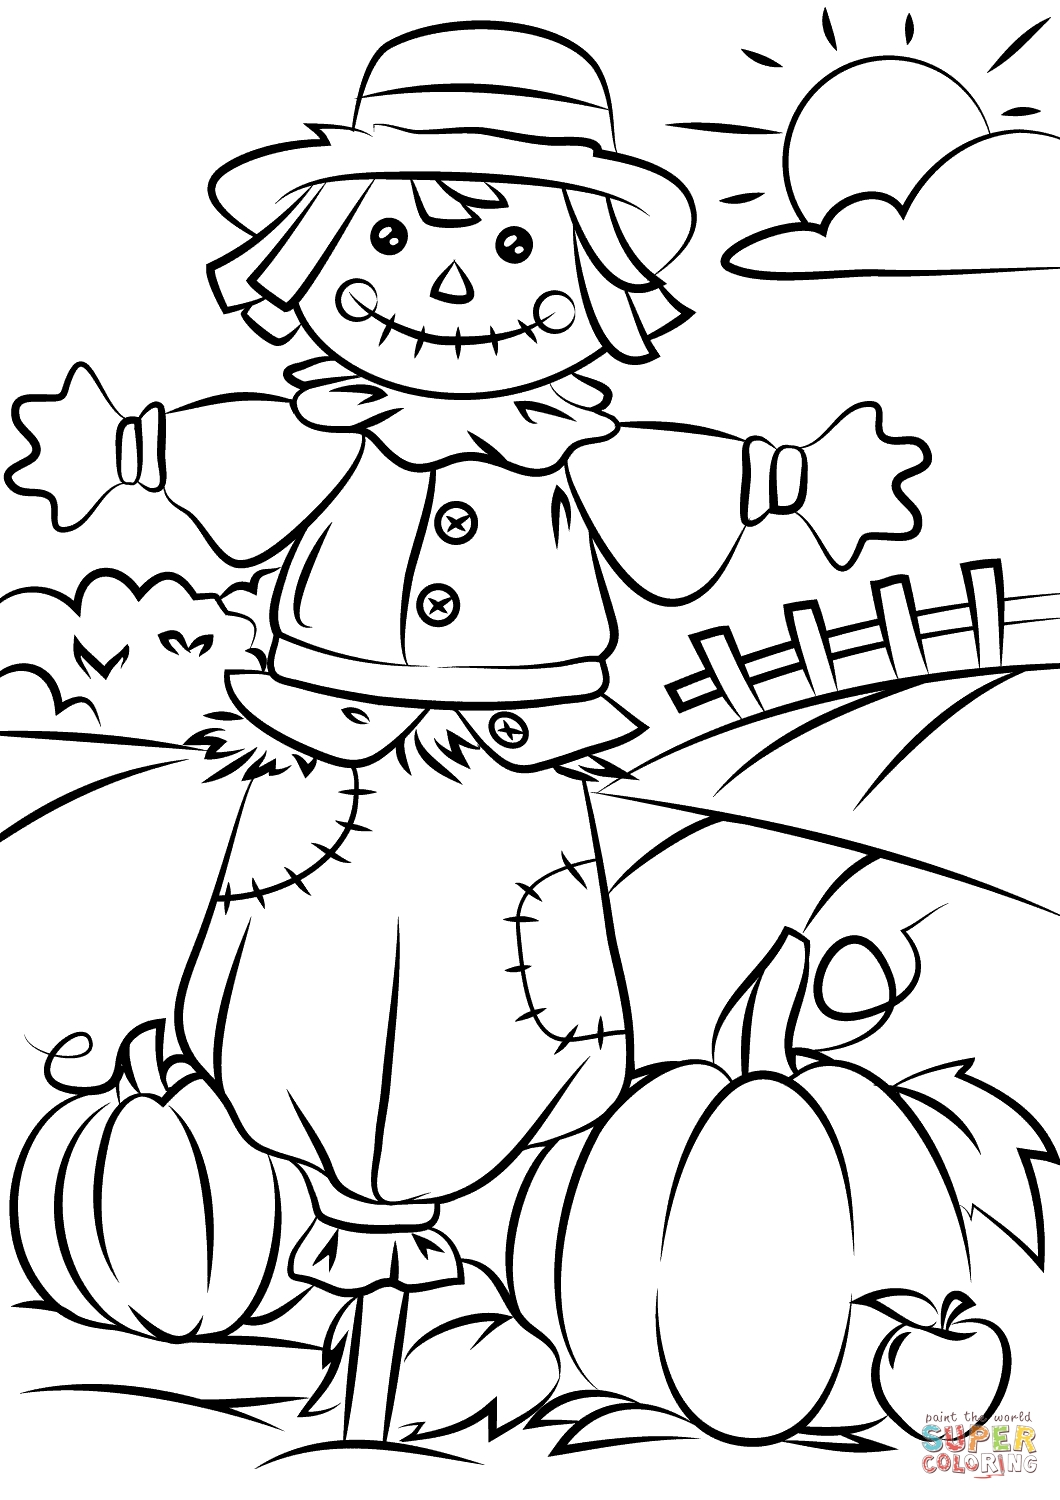 scarecrow coloring page - free scarecrow coloring pages